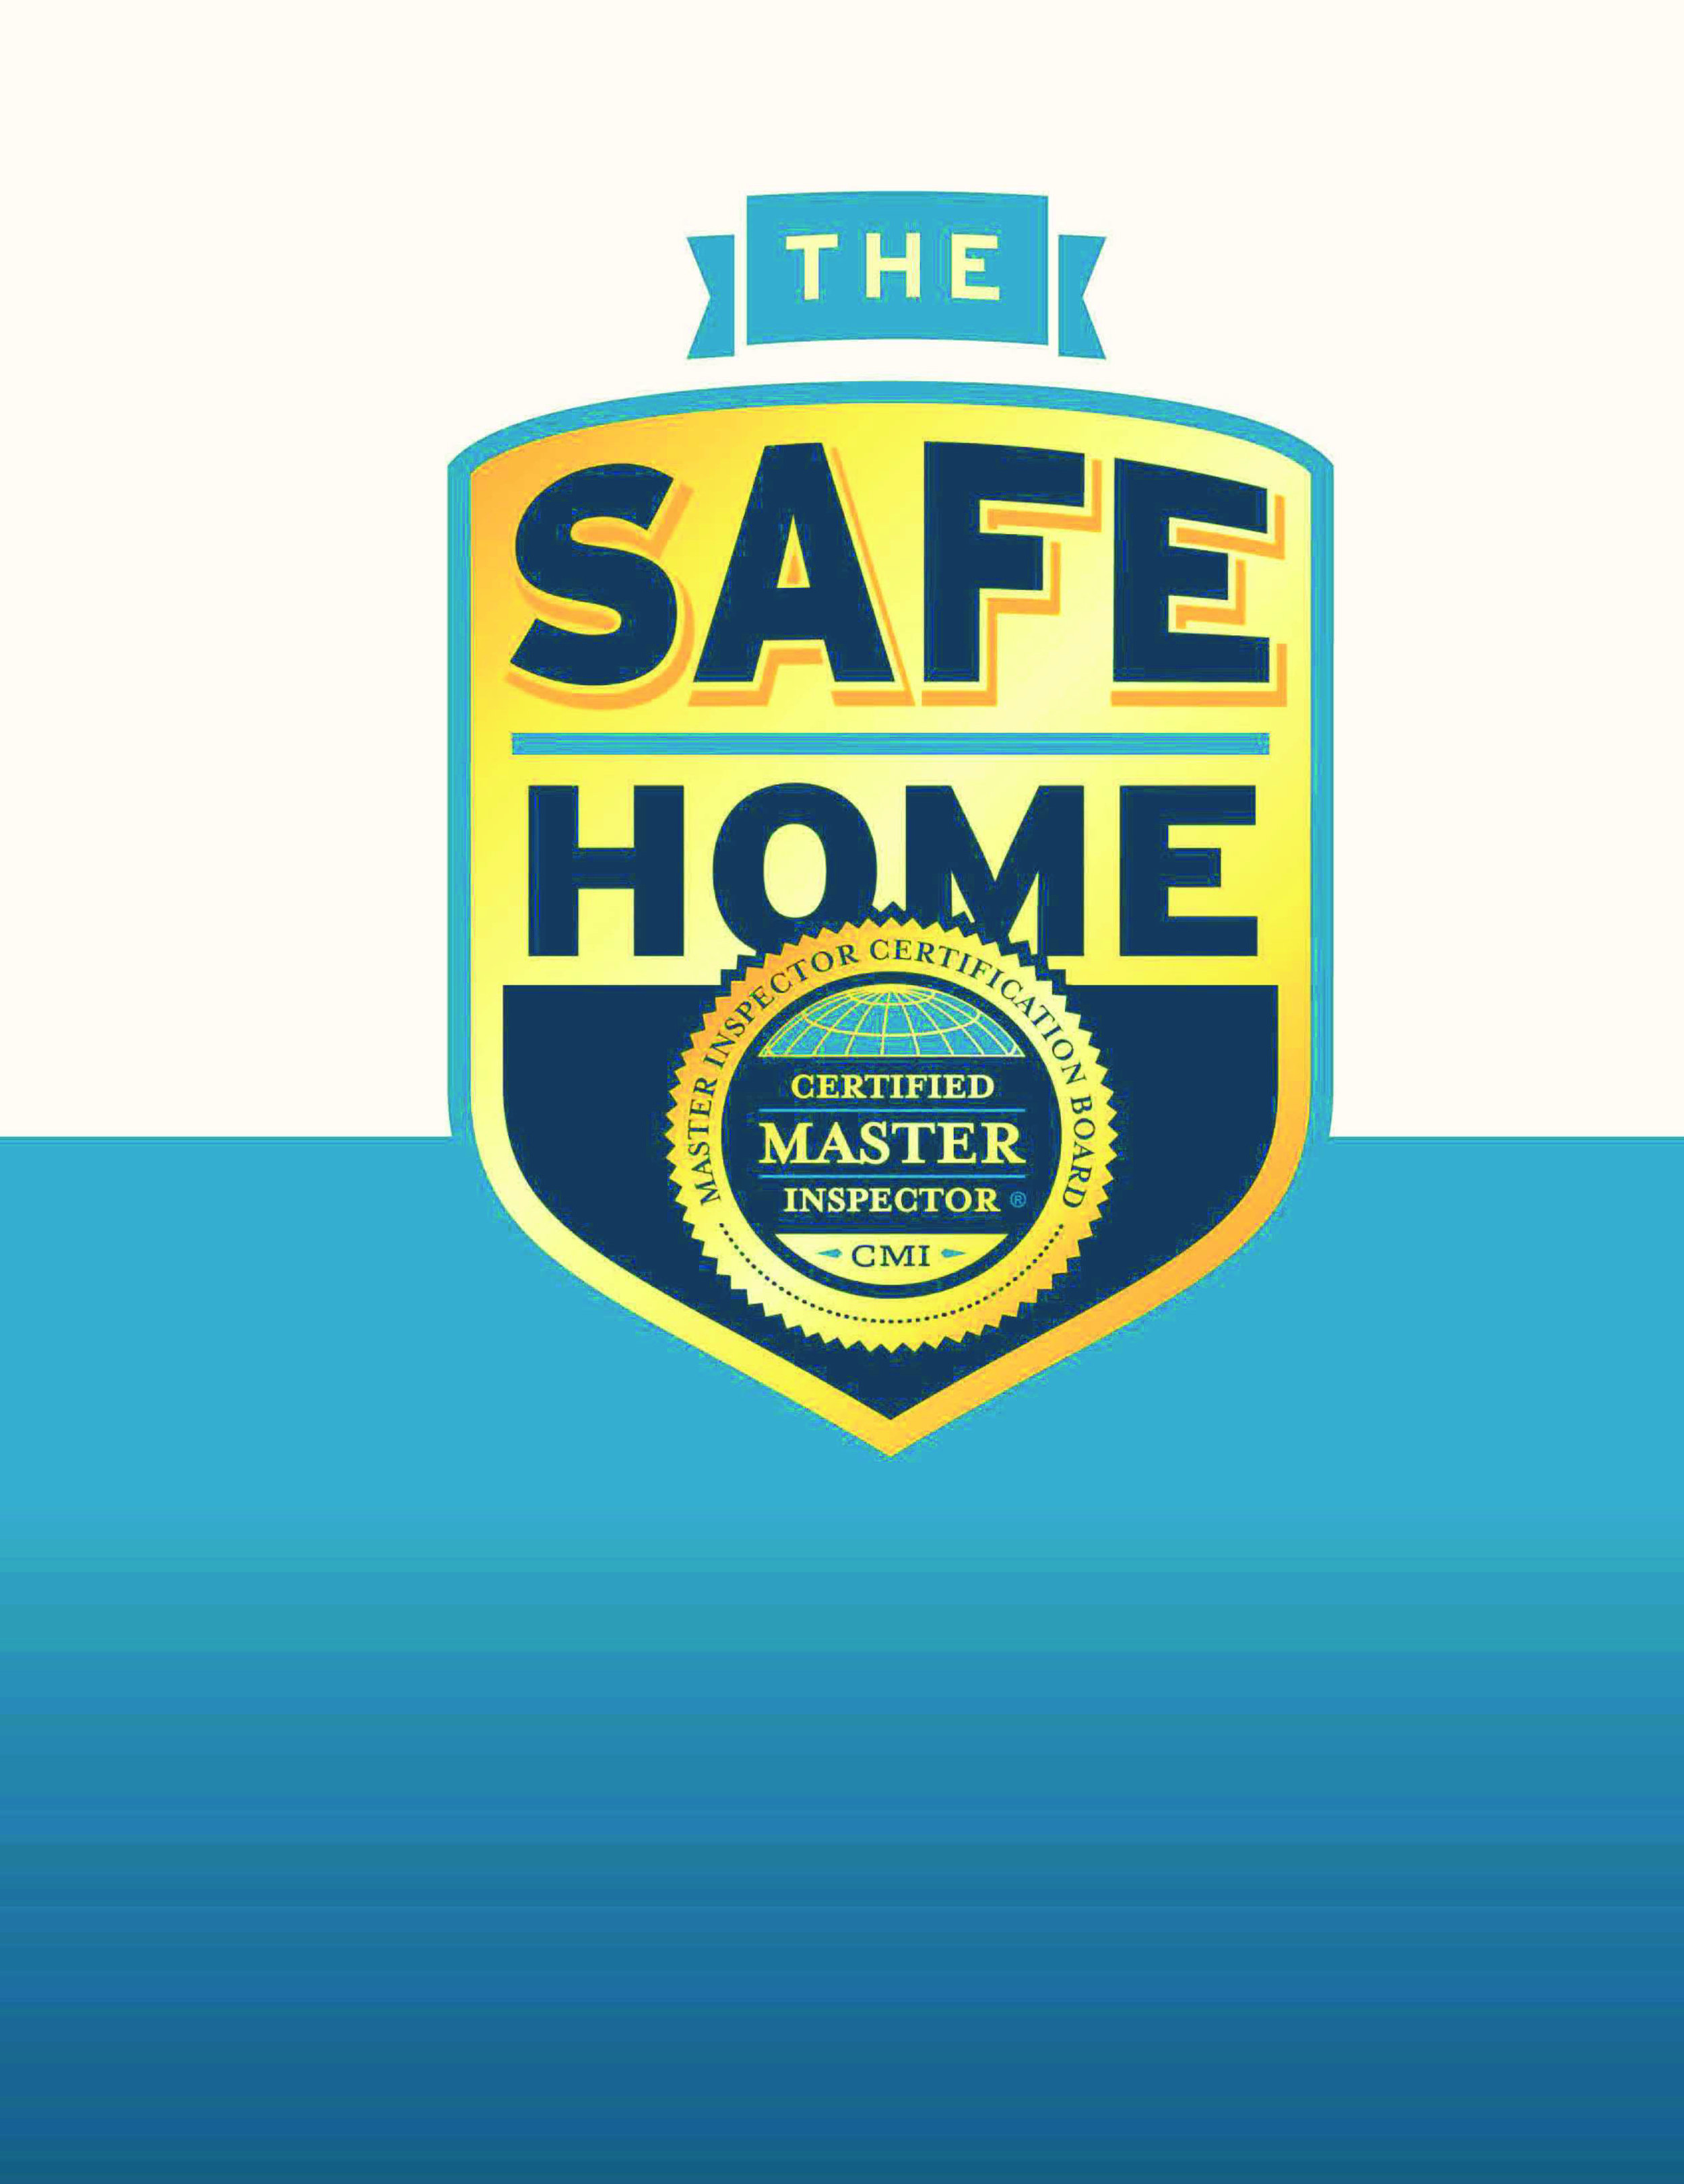 The Safe Home Book Image.jpg